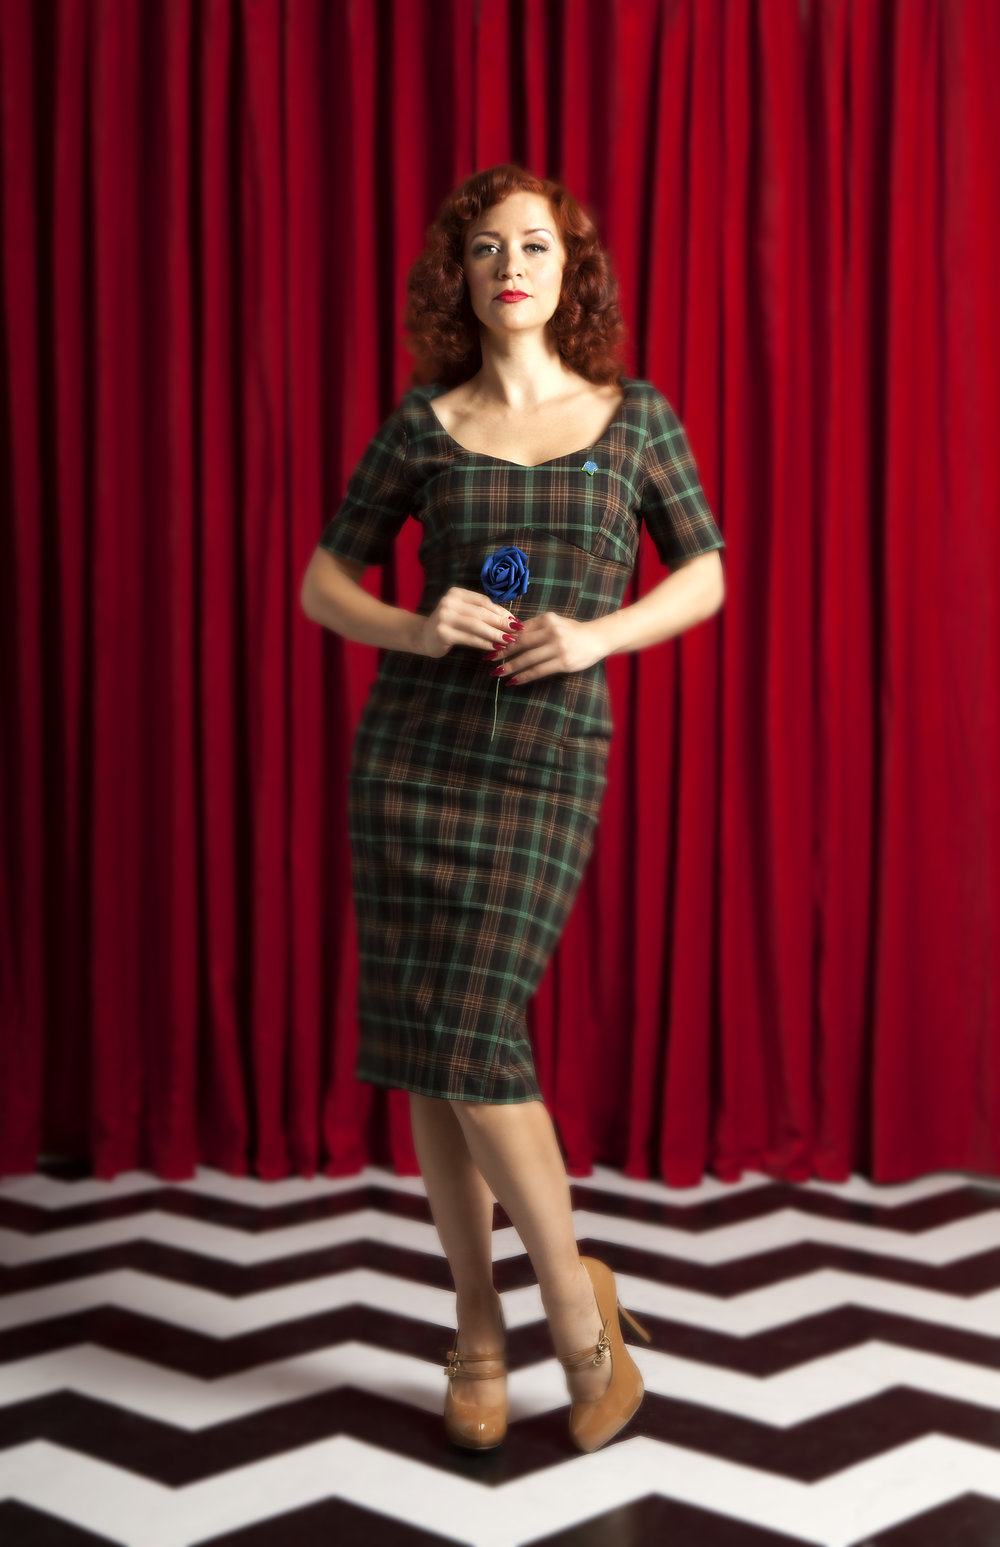 Twin Peaks Chic - Dancing girls in flannel: plaid,Eye-patched redhead has gone mad. Gary Cooper, Cary Grant,Men in uniform make us pant. Saddle shoes, jazzy blues,Coconuts house hidden clues. Perfume counter, department store,Purity, unicorns & more. Audrey's got eyebrows on fleek,This is why we're Twin Peaks Chic. Francine in Pinup Girl Clothing'sPinup Couture Priscilla DressFrancine is a photographer, performer & the producer of The Pink Room Burlesque. Known as